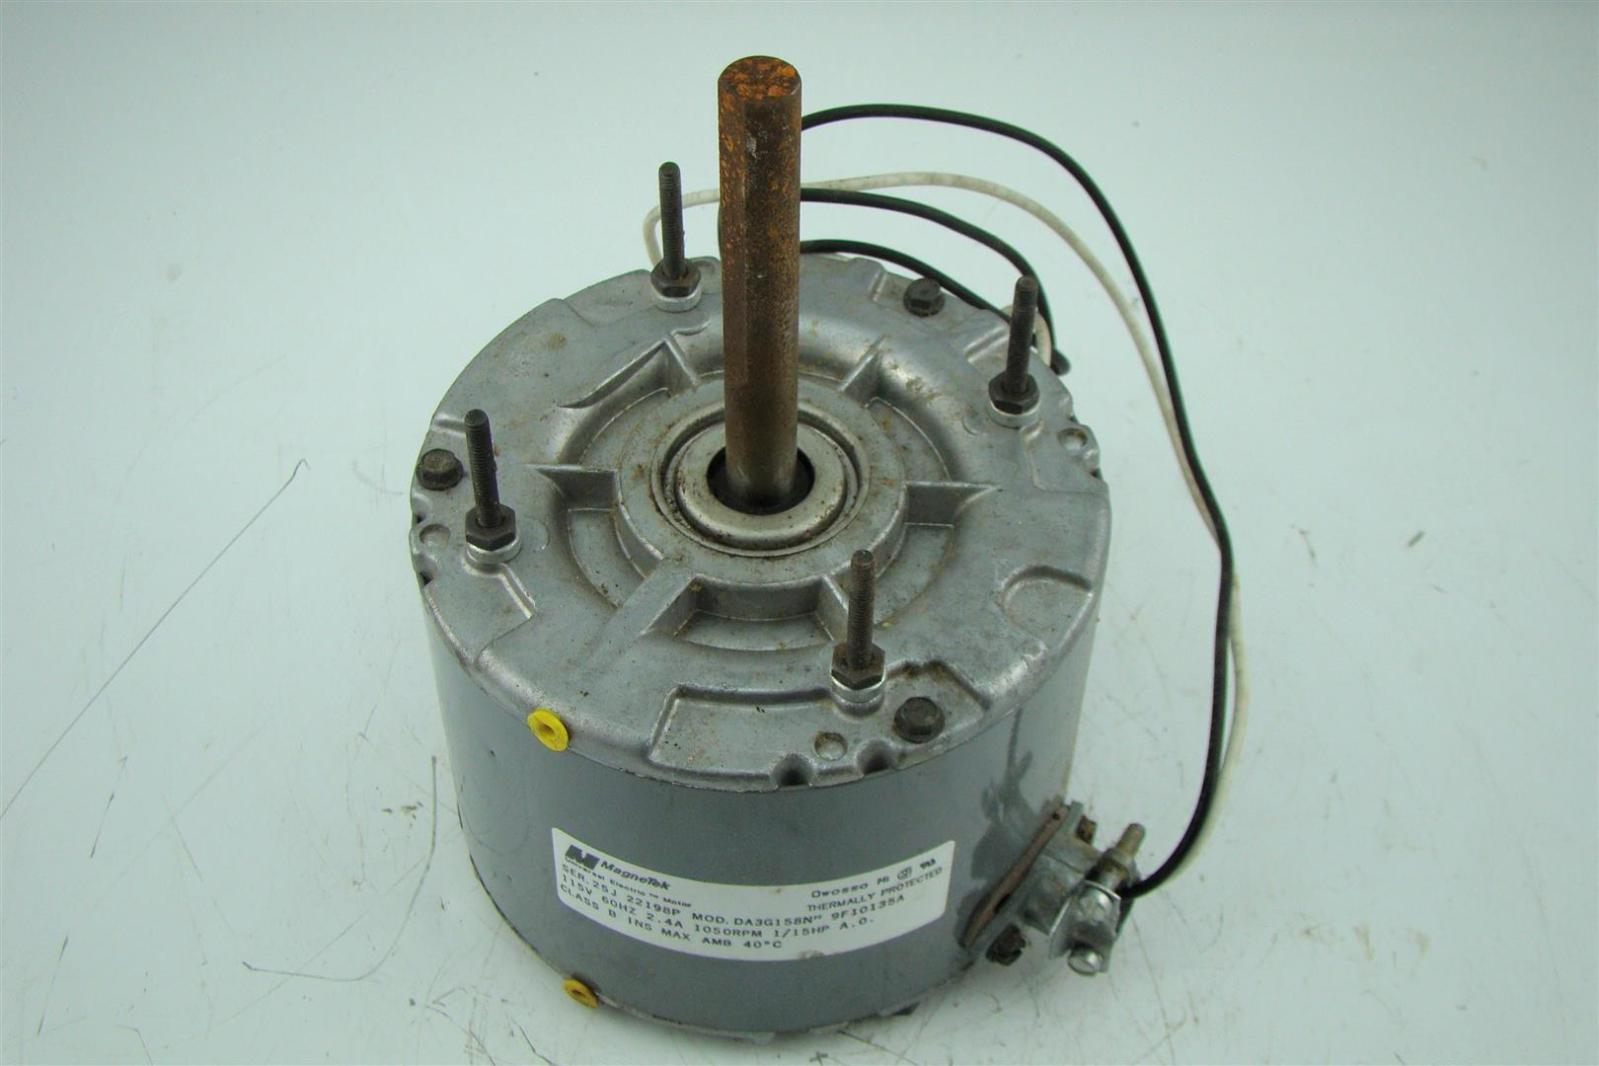 Magnetek universal electric motor 1 15 hp 2 4a 60hz for Class b electric motor